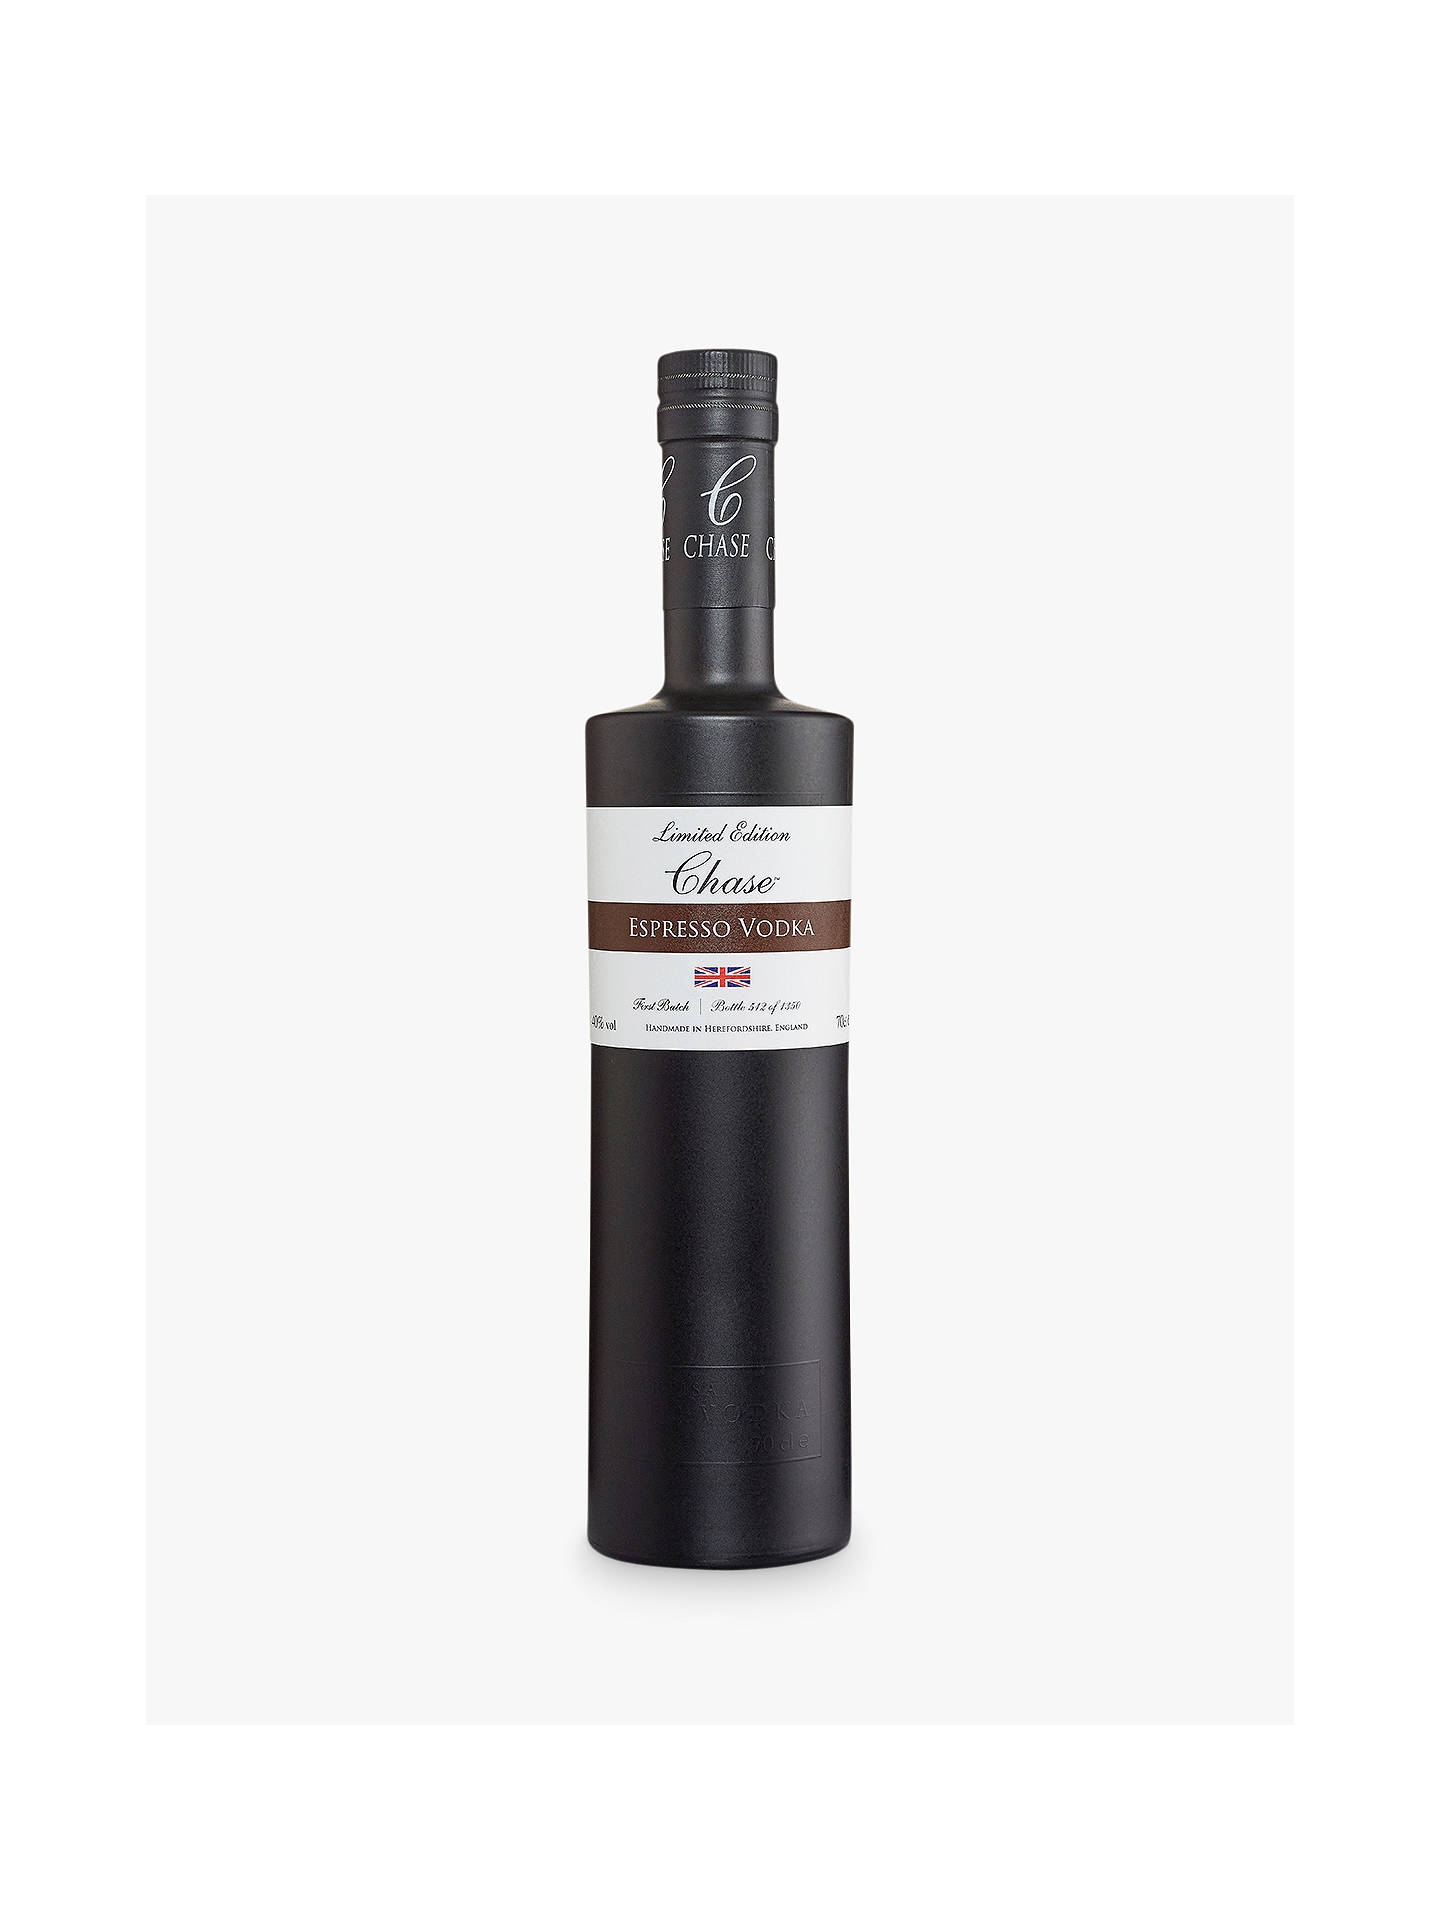 BuyChase Espresso Vodka, Limited Edition, 70cl Online at johnlewis.com